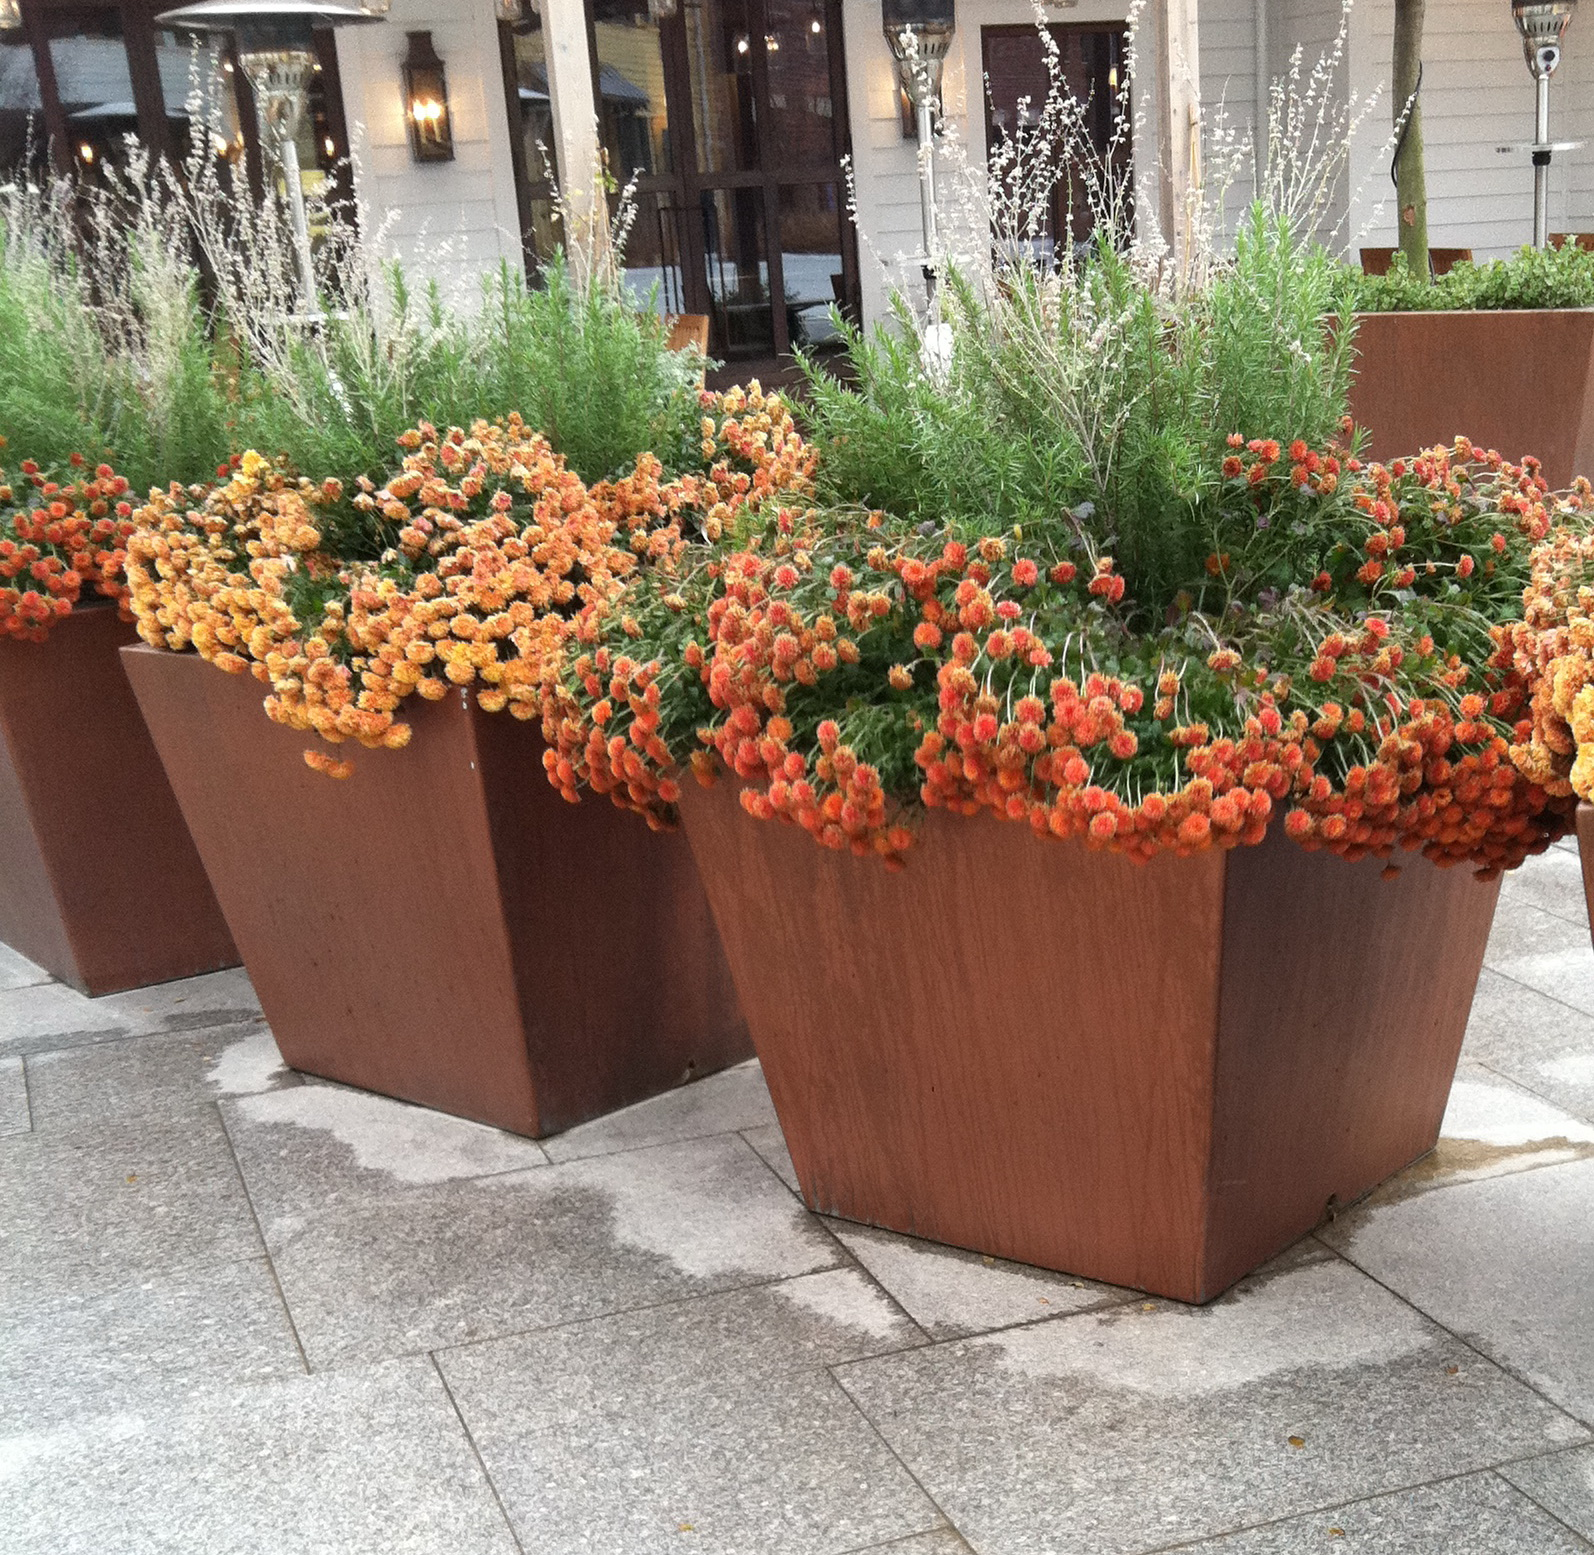 Big Flower Planters Containers Vs Pots For Your Garden And Landscape Rock